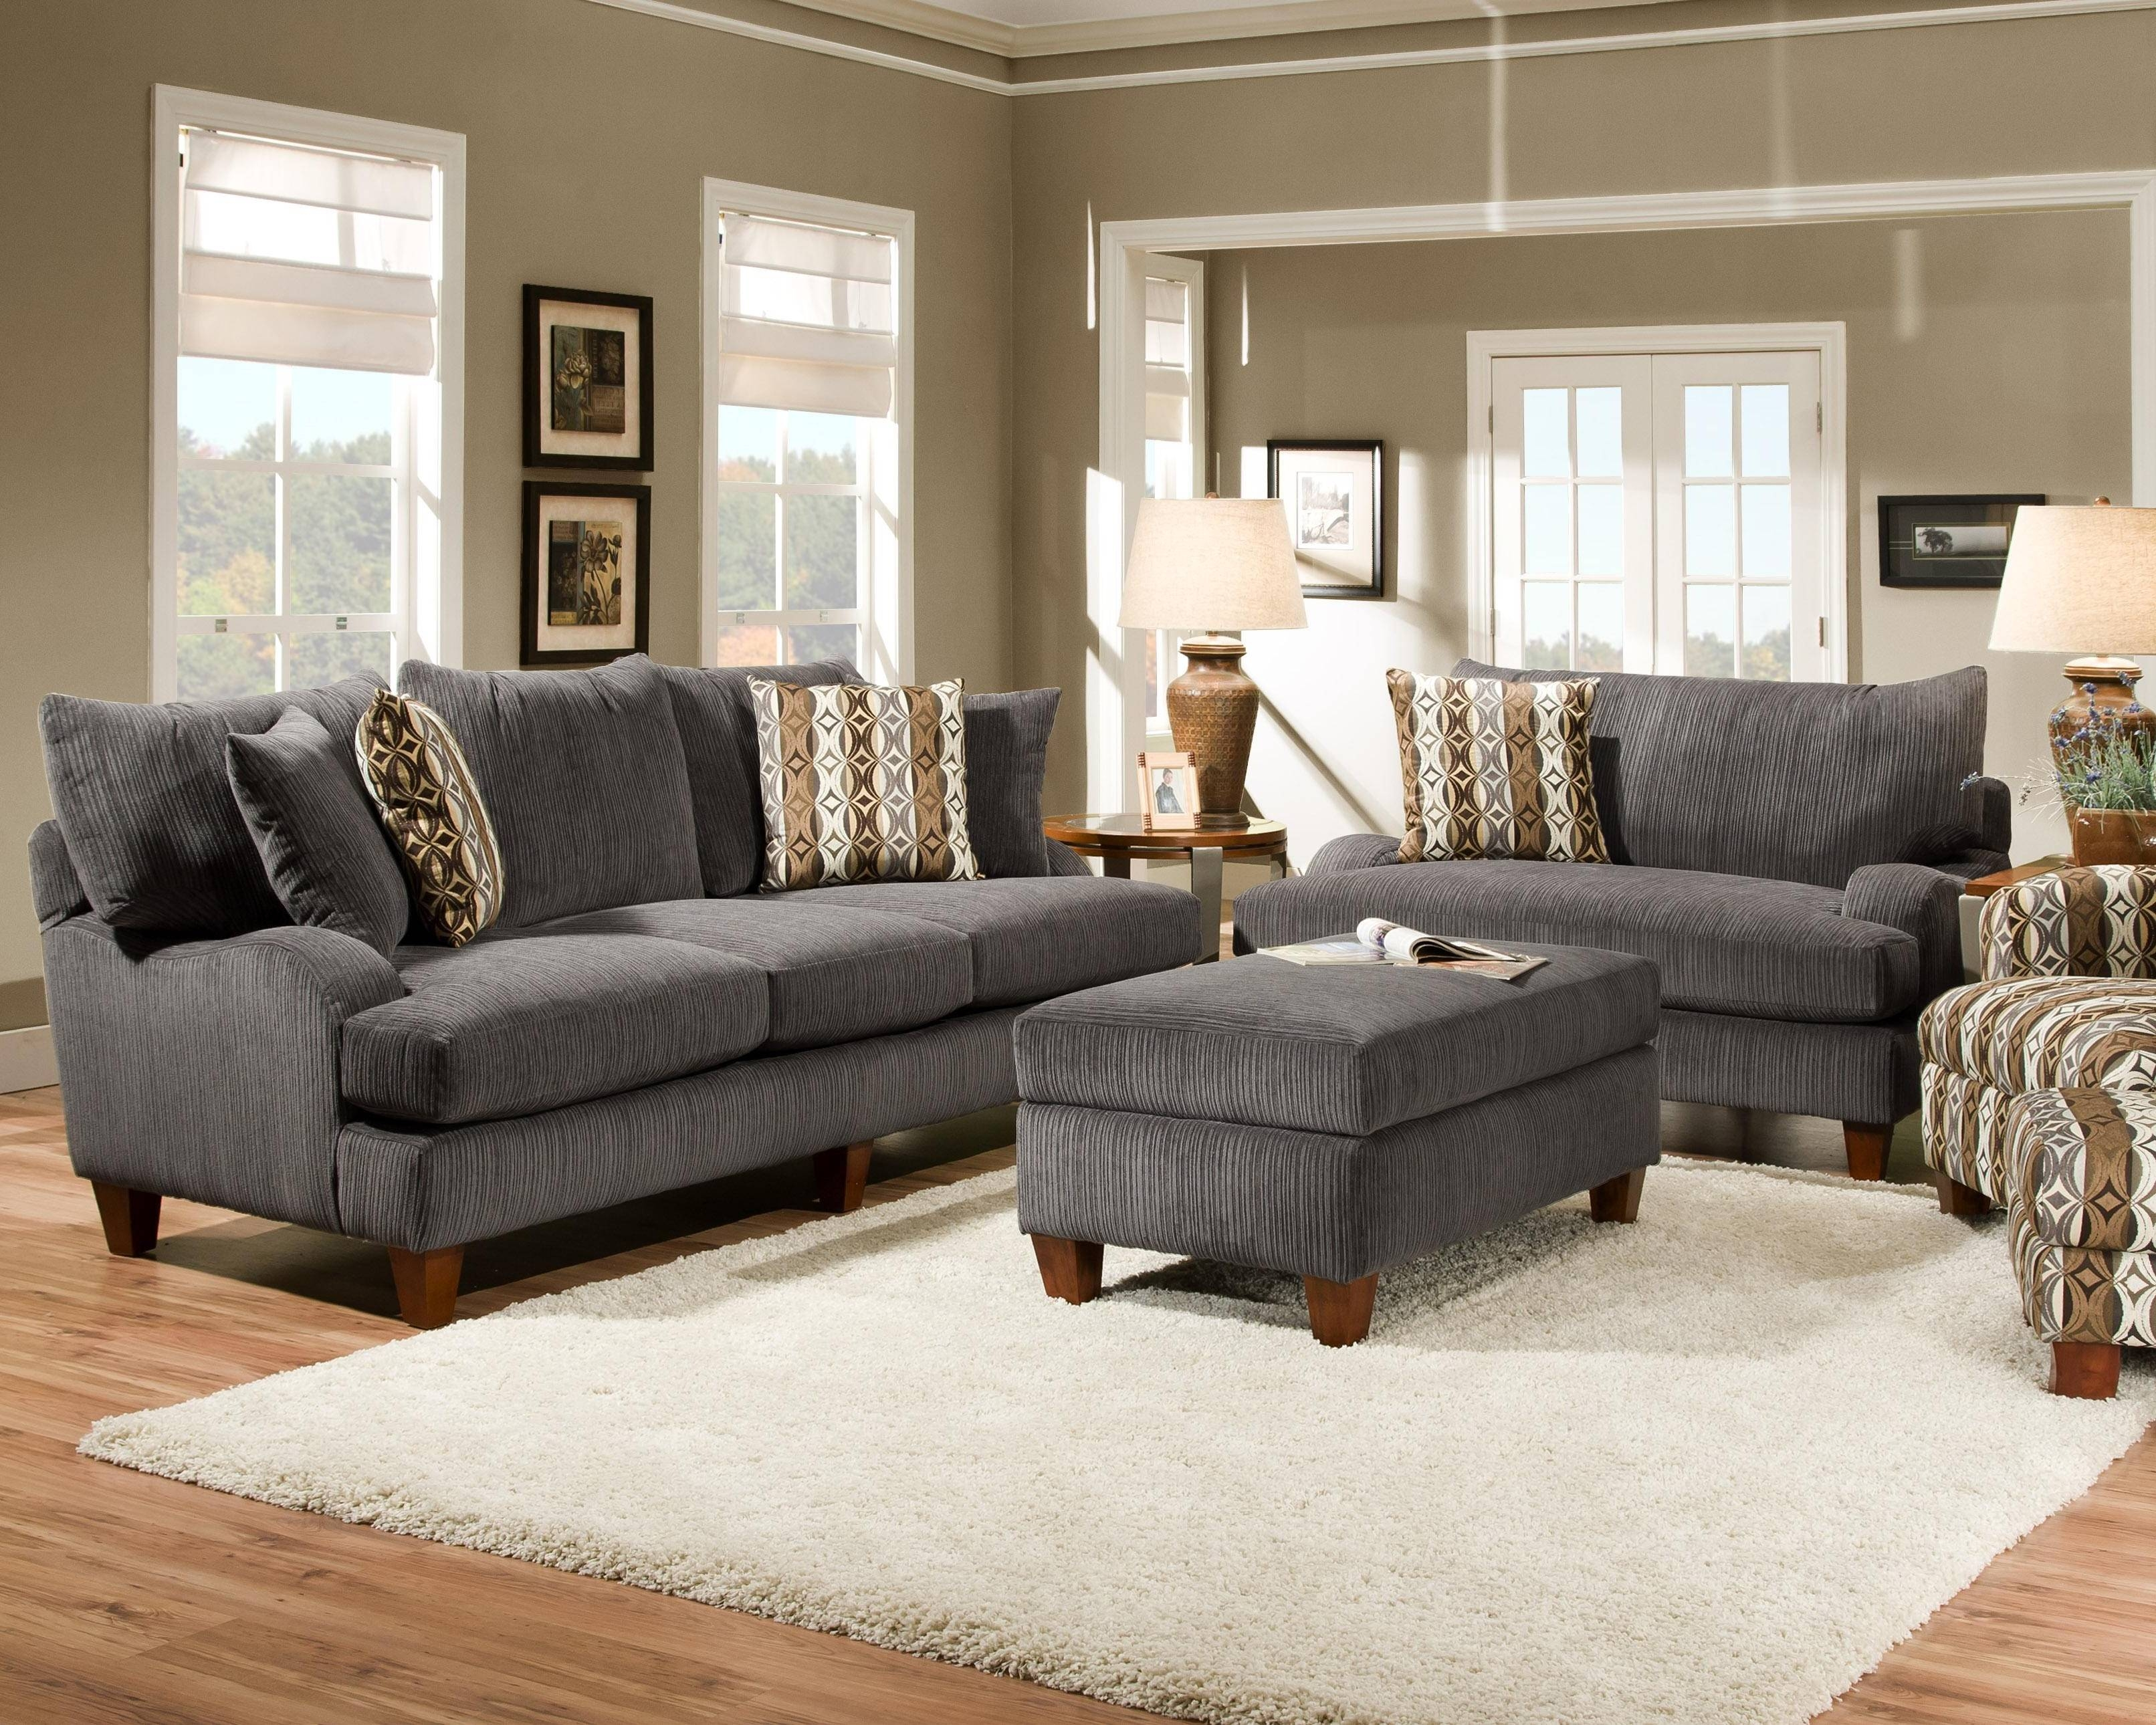 Dark Gray Couch Living Room Ideas Charcoal Grey Decorating Room-2 for Decorating With A Sectional Sofa (Image 17 of 30)